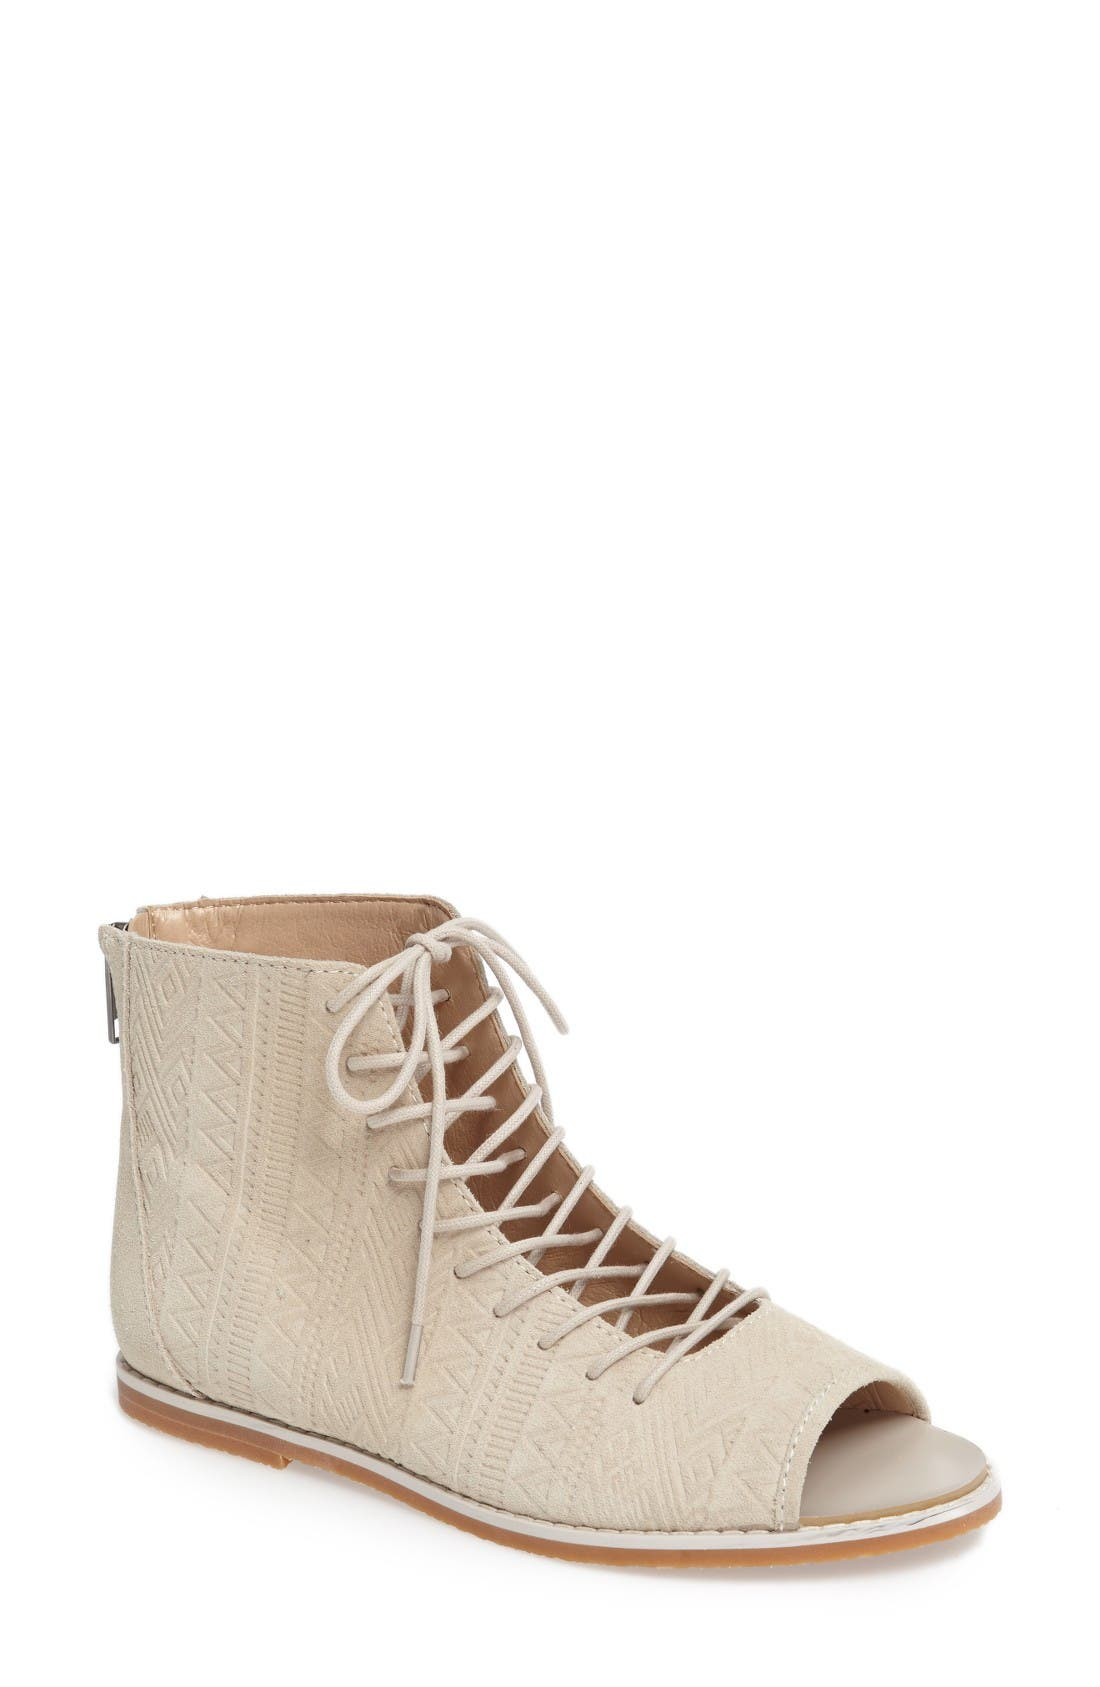 Kelsi Dagger Brooklyn Hendrix Open-Toe Bootie (Women)